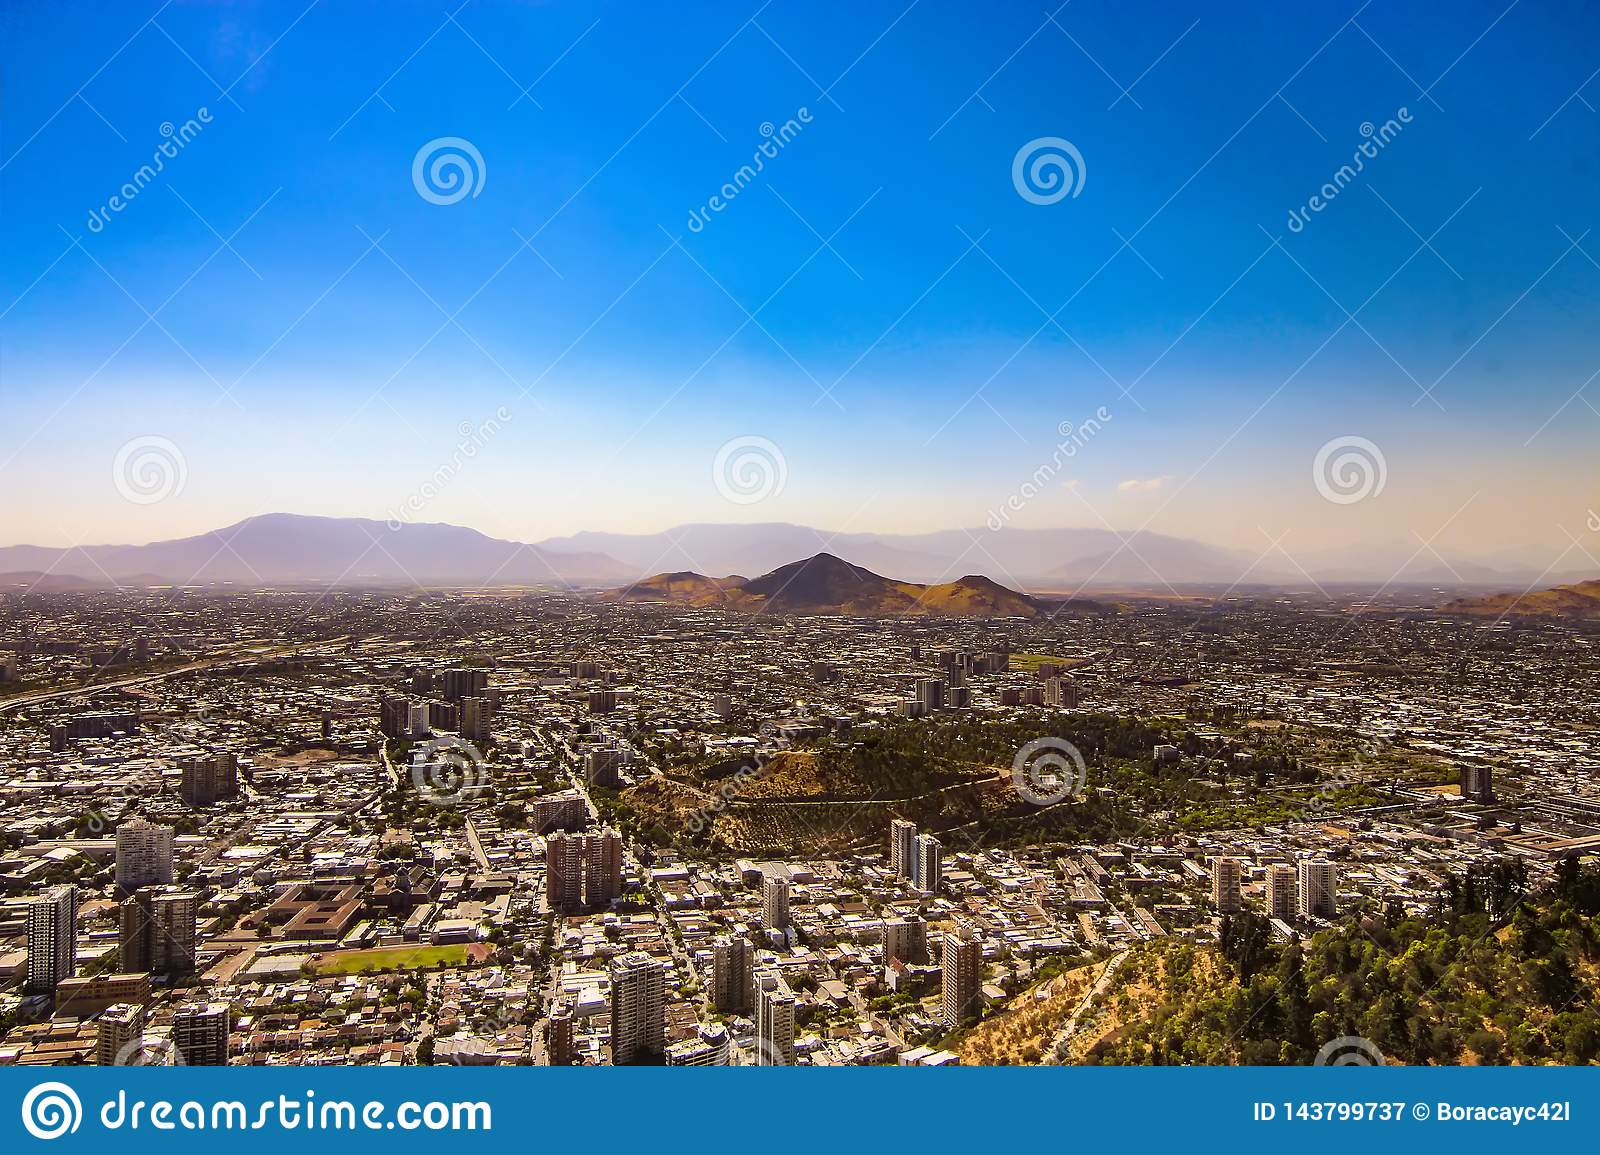 Aerial view of Santiago city, Chile